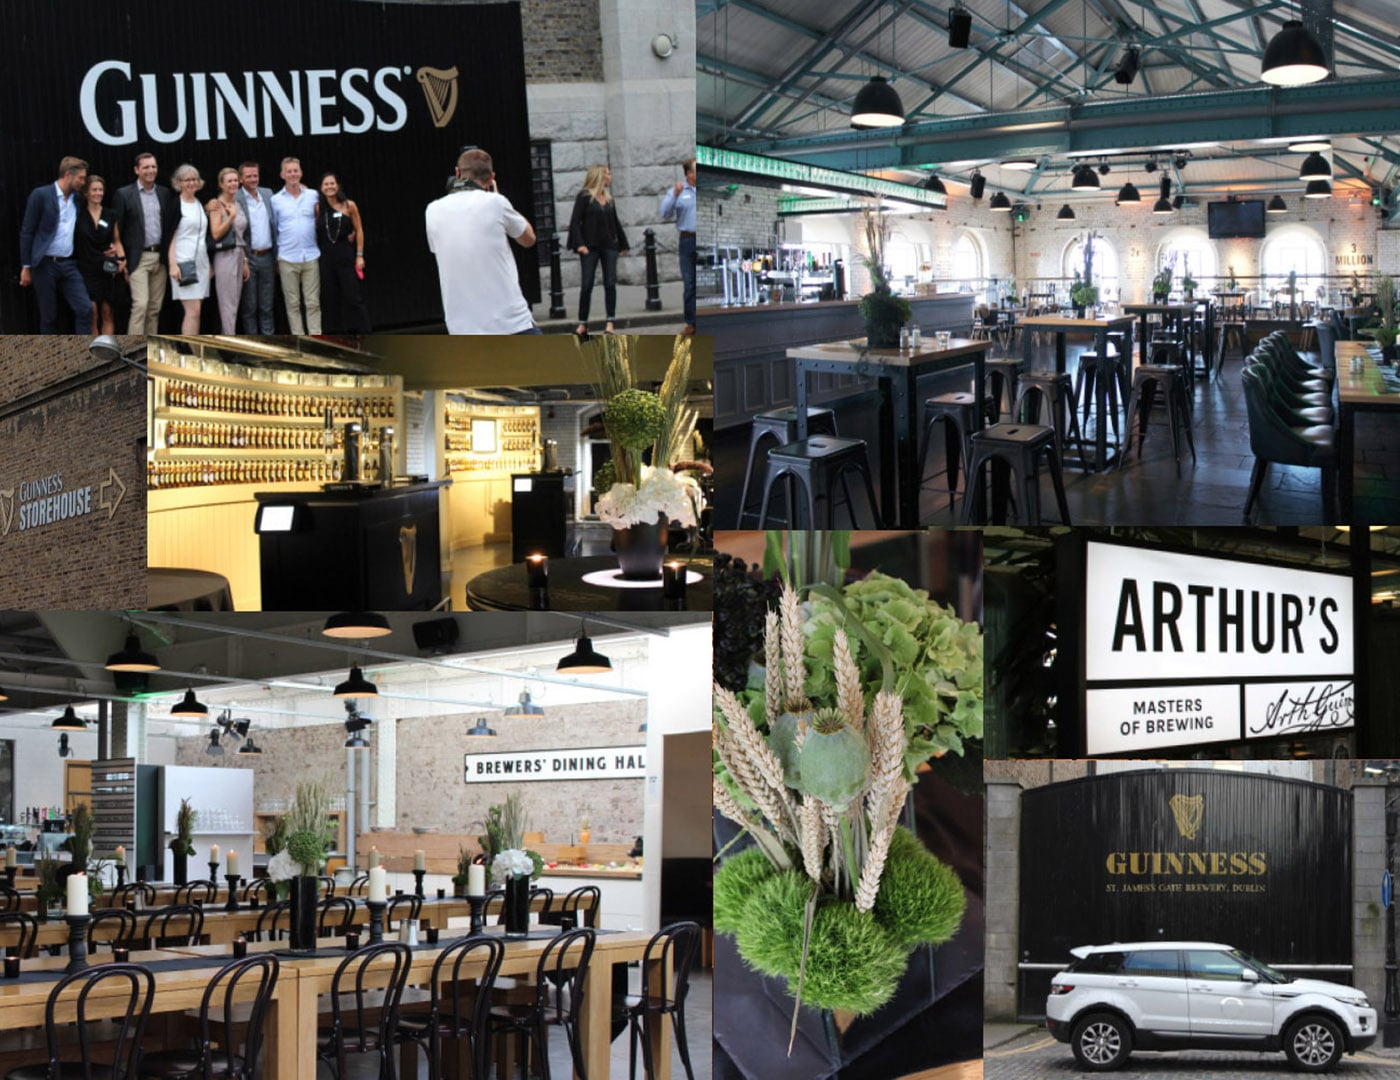 Guiness storehouse, Corporate Events, Corporate Event Management, Private Parties, Event planner in Ireland, Party Planner